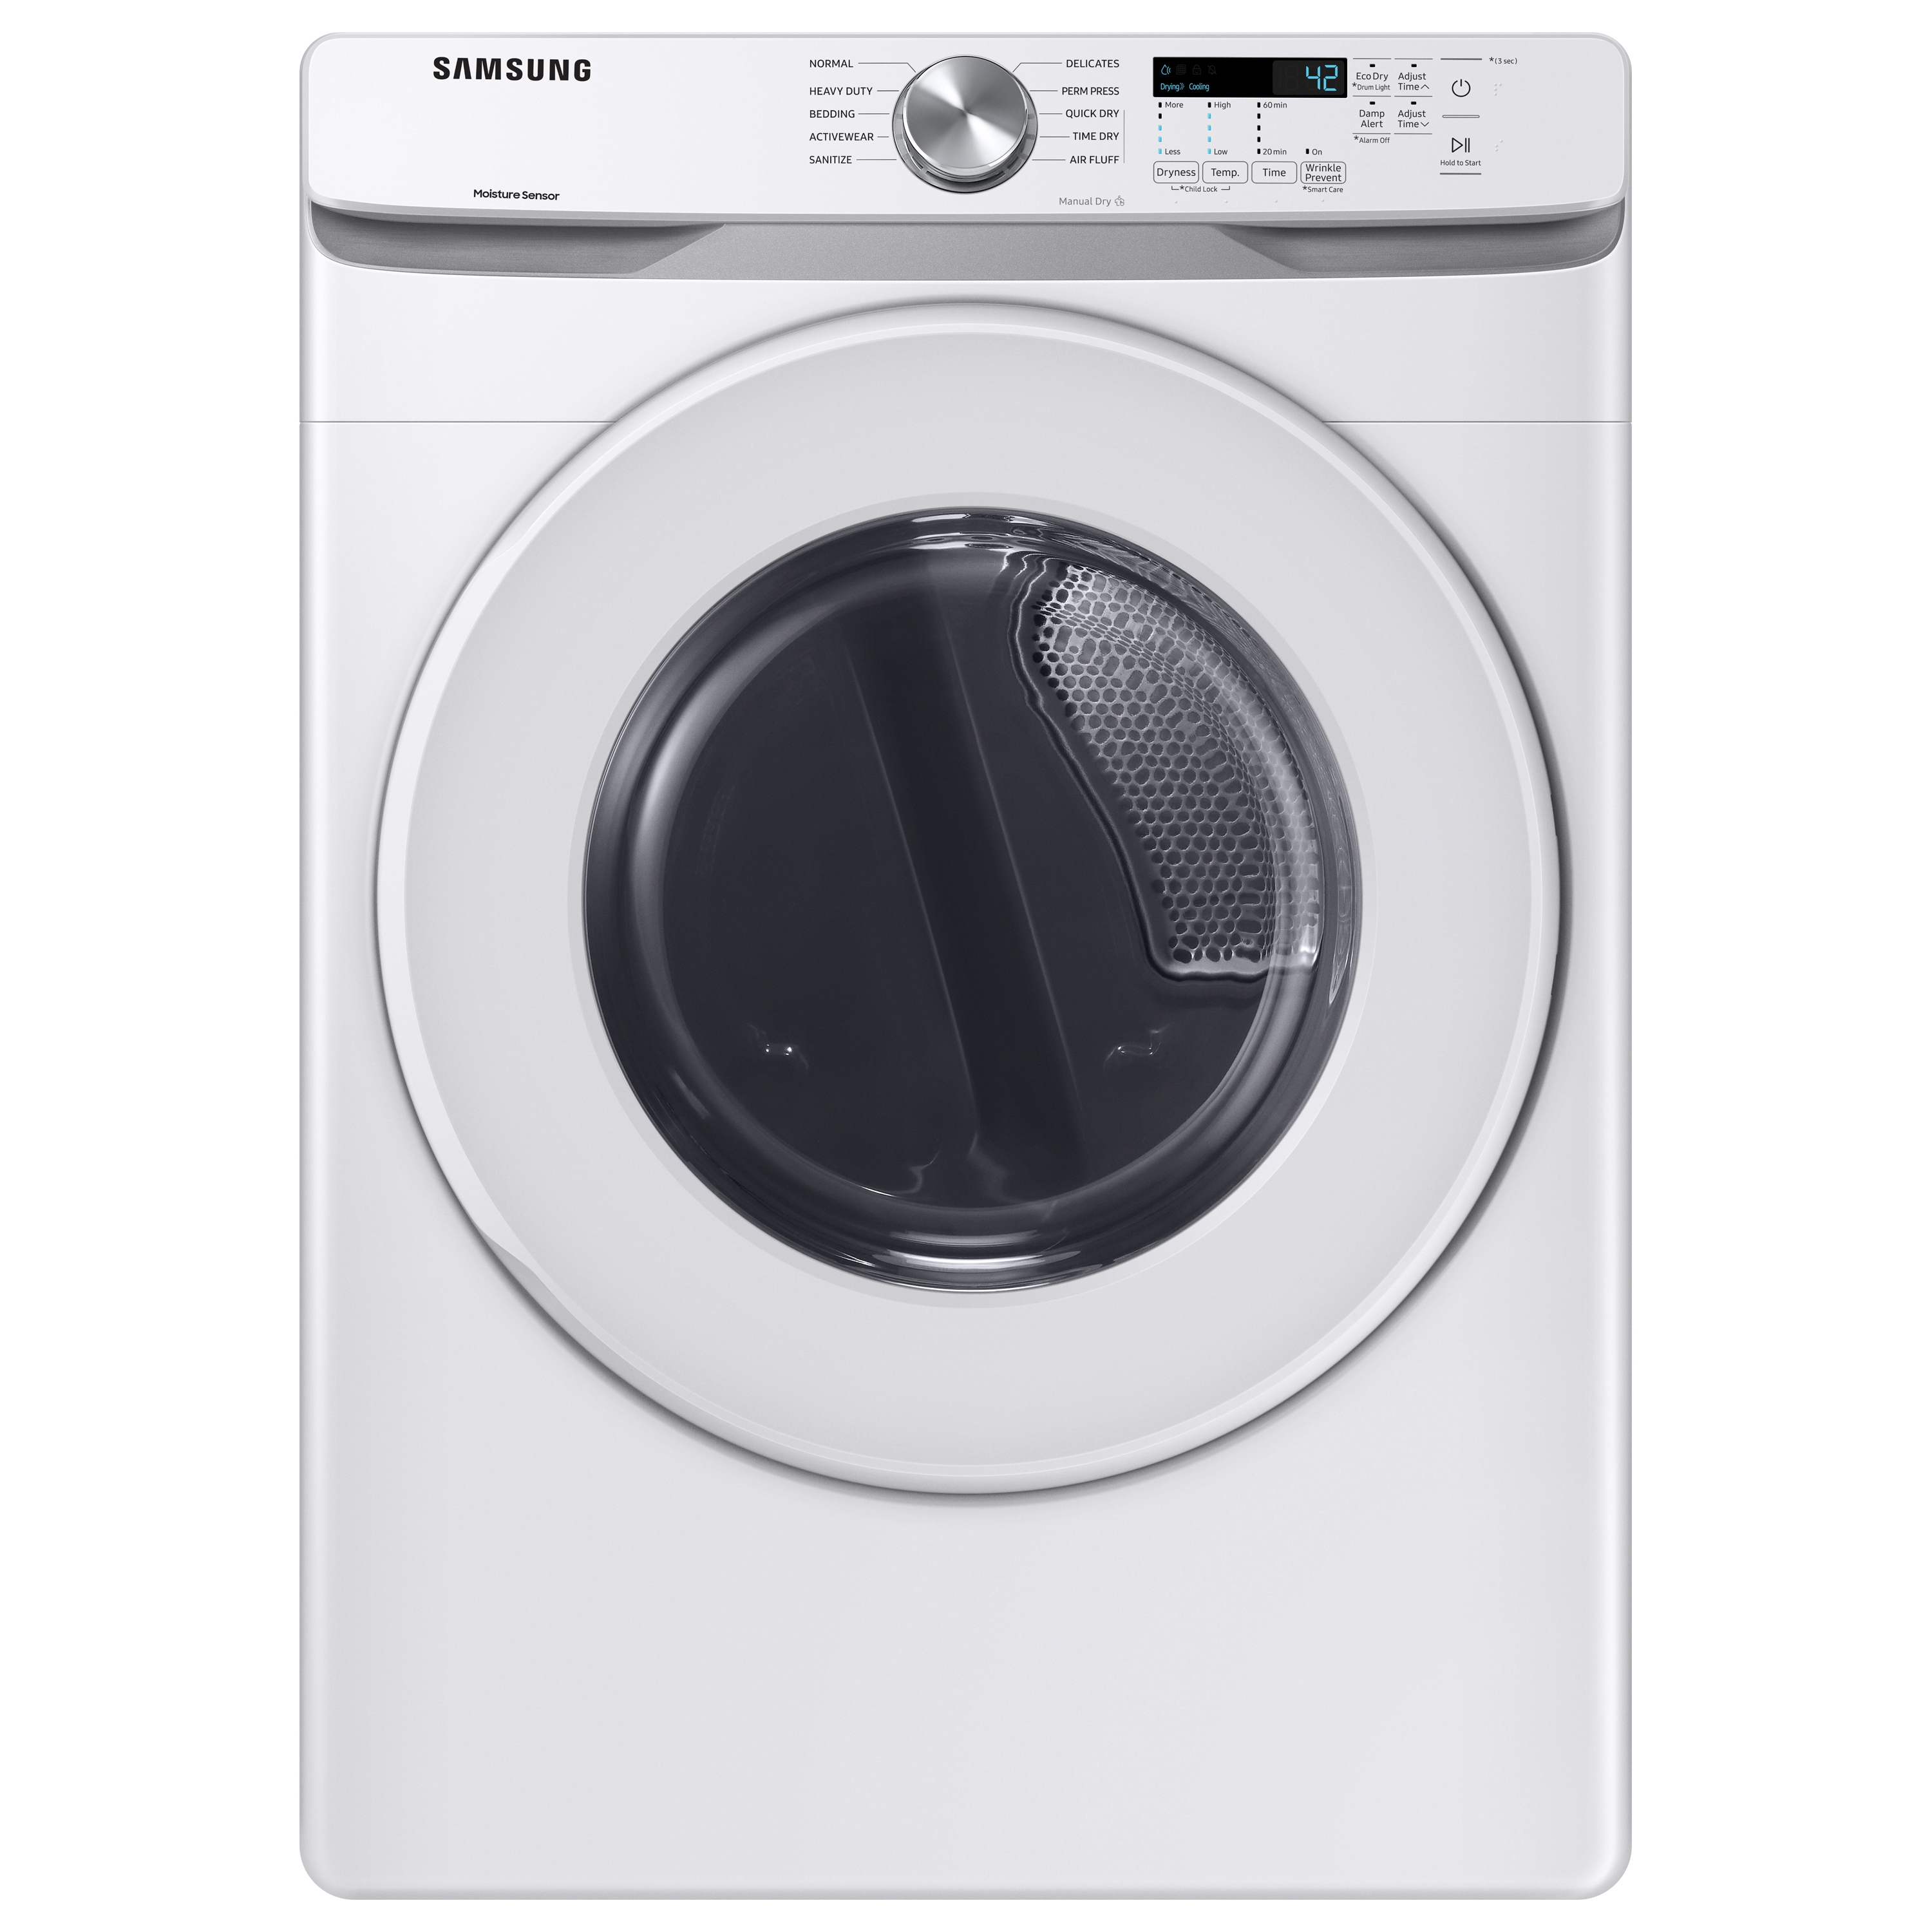 Samsung coupon: Samsung 7.5 cu. ft. Electric Long Vent Dryer with Sensor Dry in White (DVE45T6020W/A3)